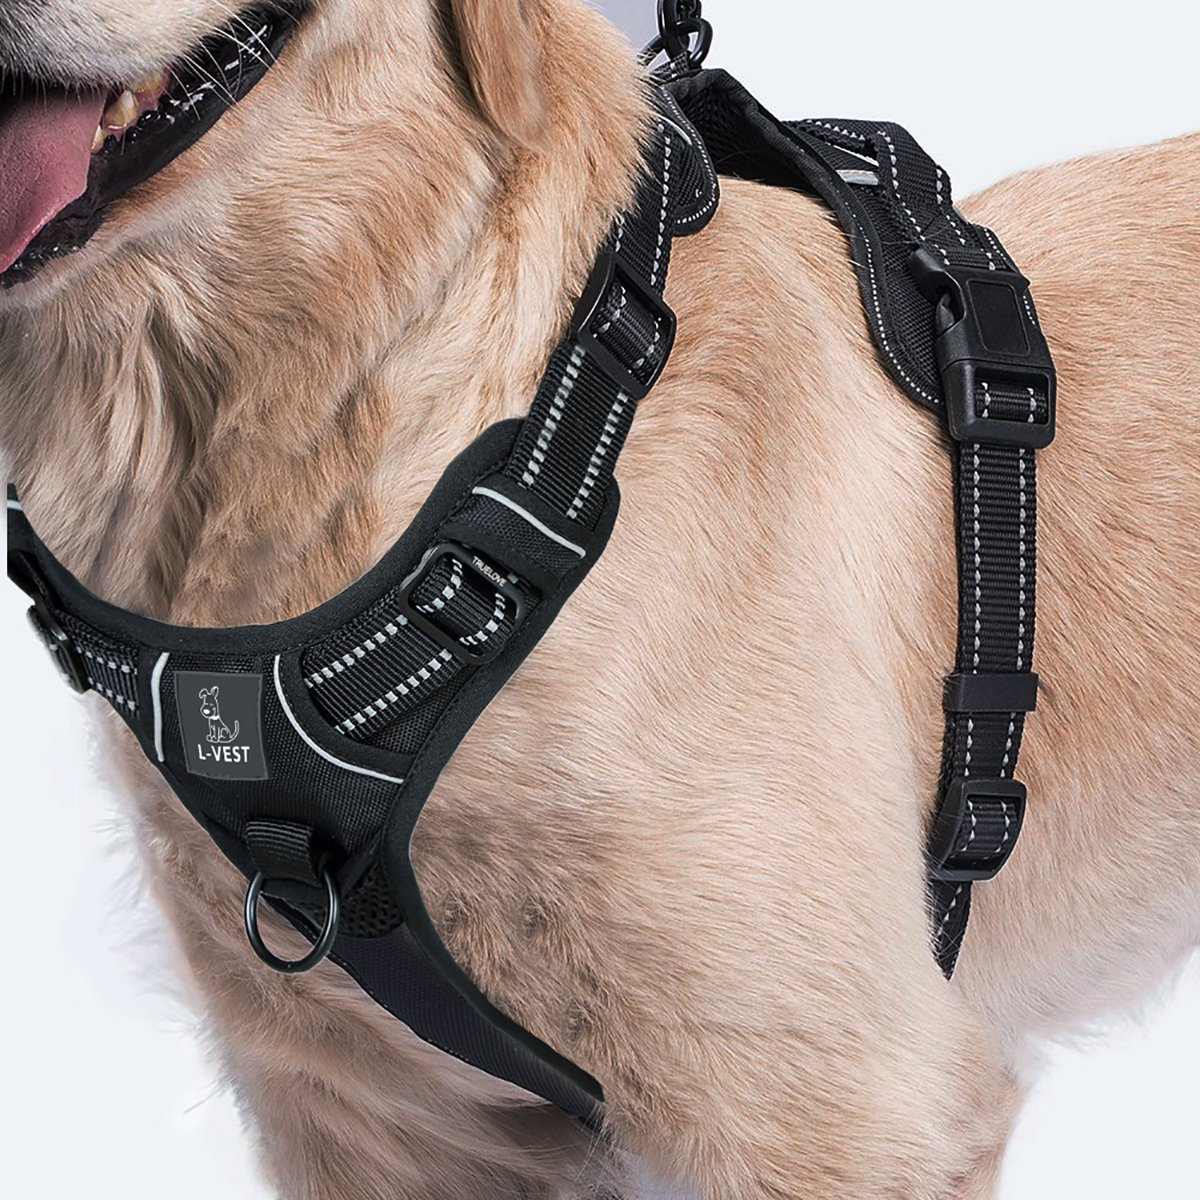 Dog Harness for Easy No Pull Walk - Attach Leash To Front Or Back Of Harnesses Vest To Prevent Pulling While Walking Or Training - See Size Chart Image (Black, Large)